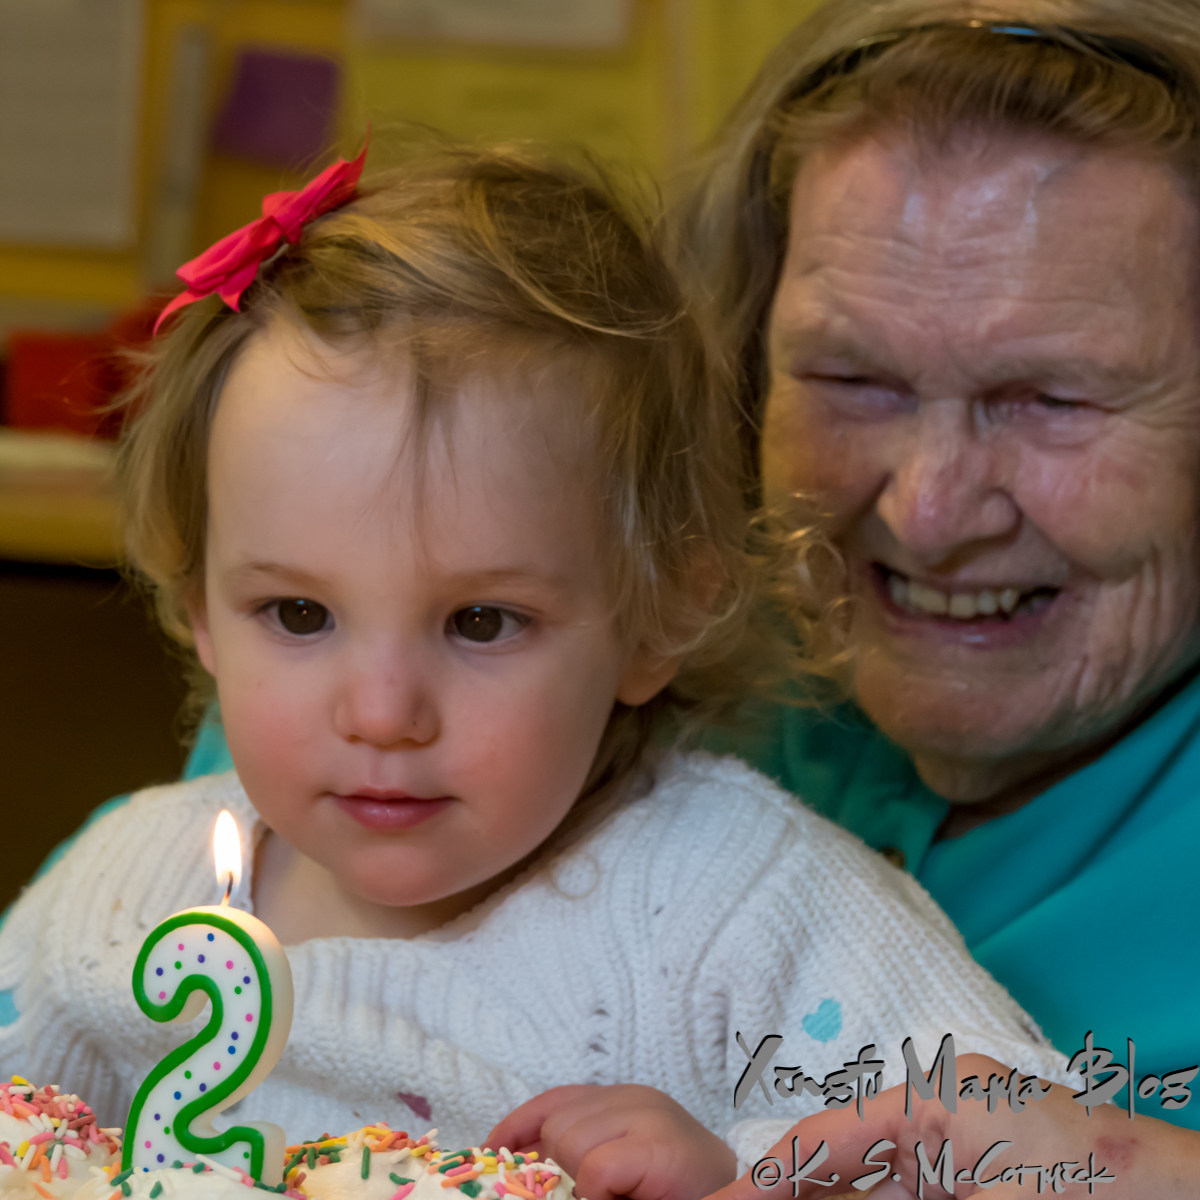 A two year old and 95 year old looking at a #2 birthday candle.